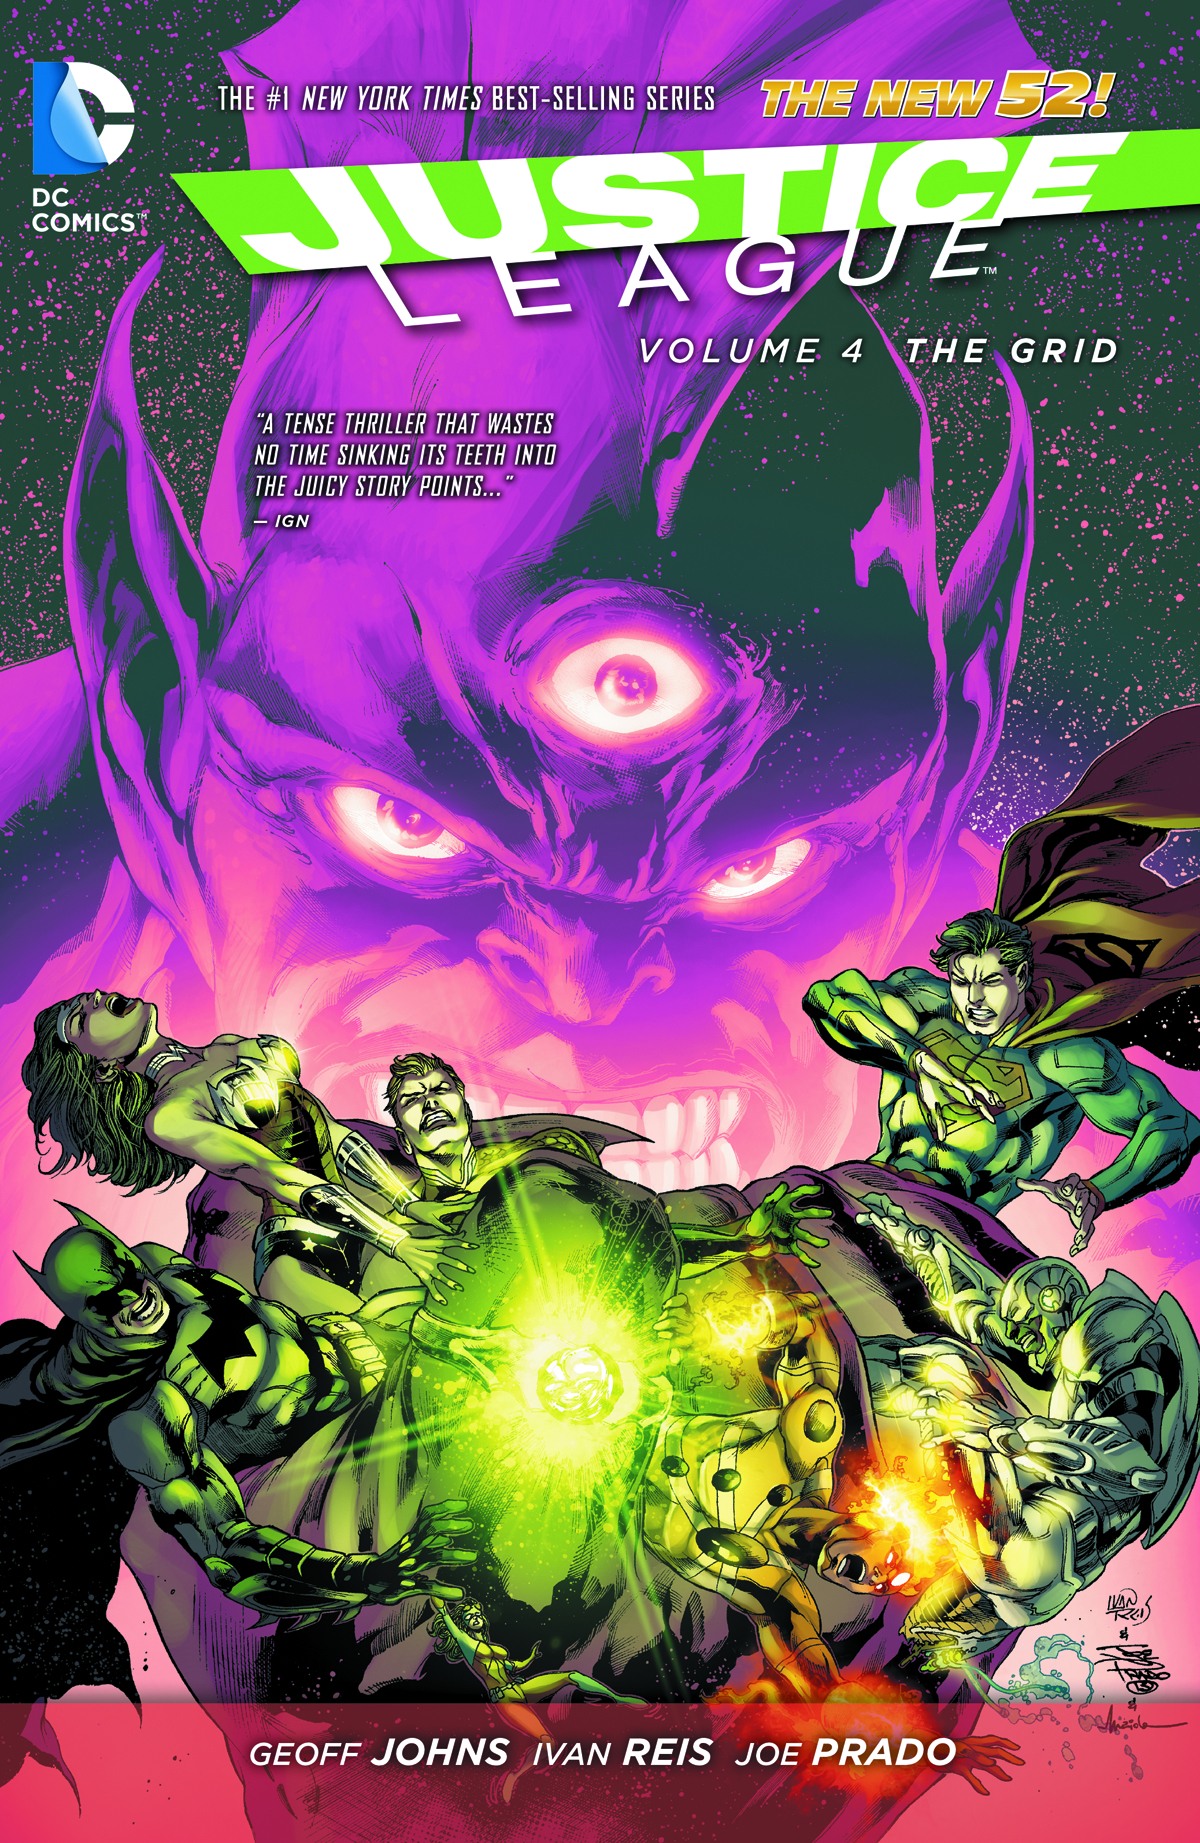 JUSTICE LEAGUE TP VOL 04 THE GRID